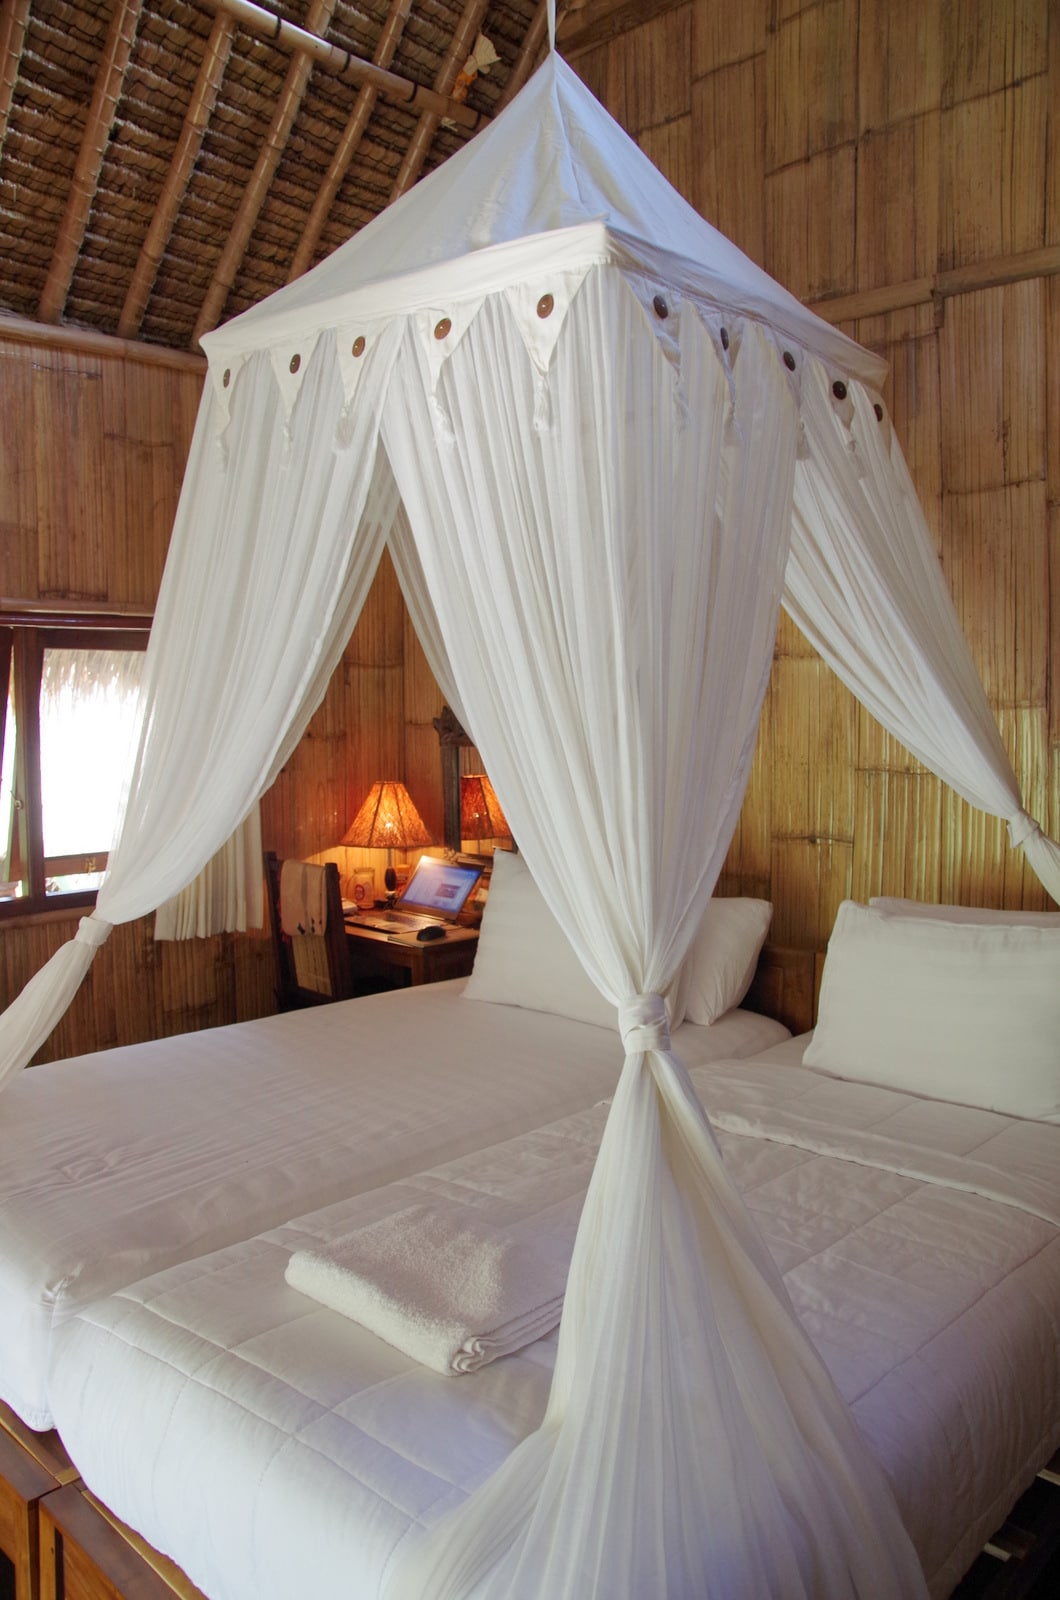 Beds with mosquito net(also can make double bed setting)